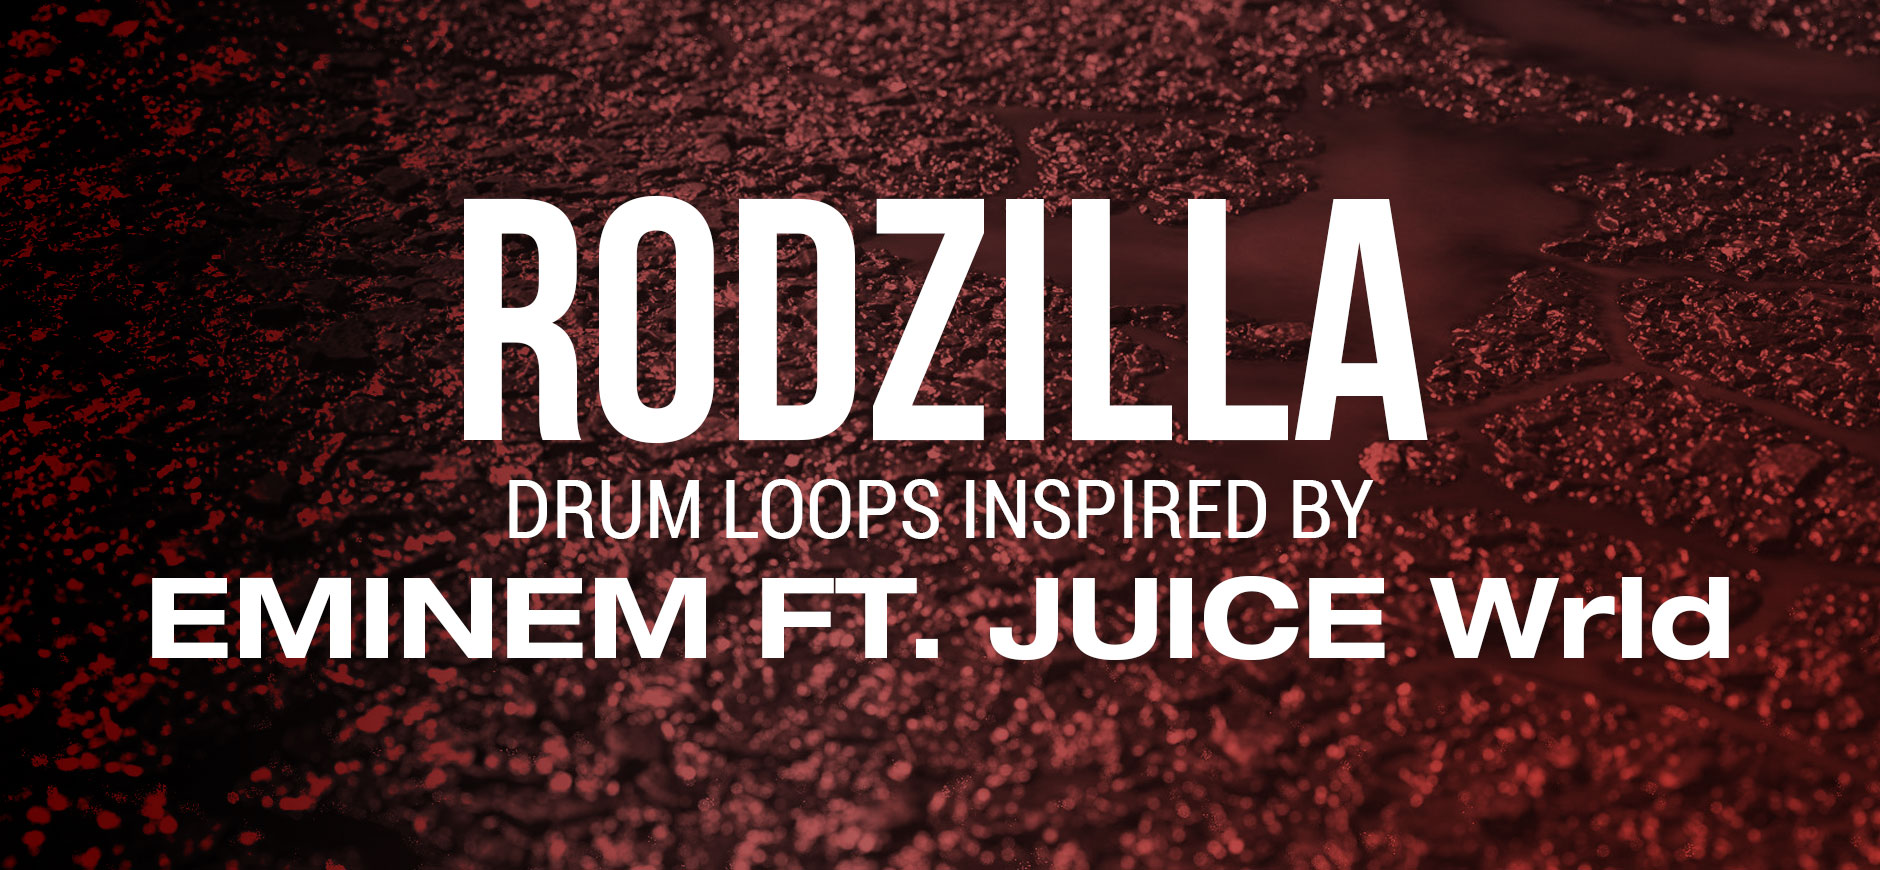 Godzilla Drum Loops Kit inspiré par Eminem ft. JUICE Wrld